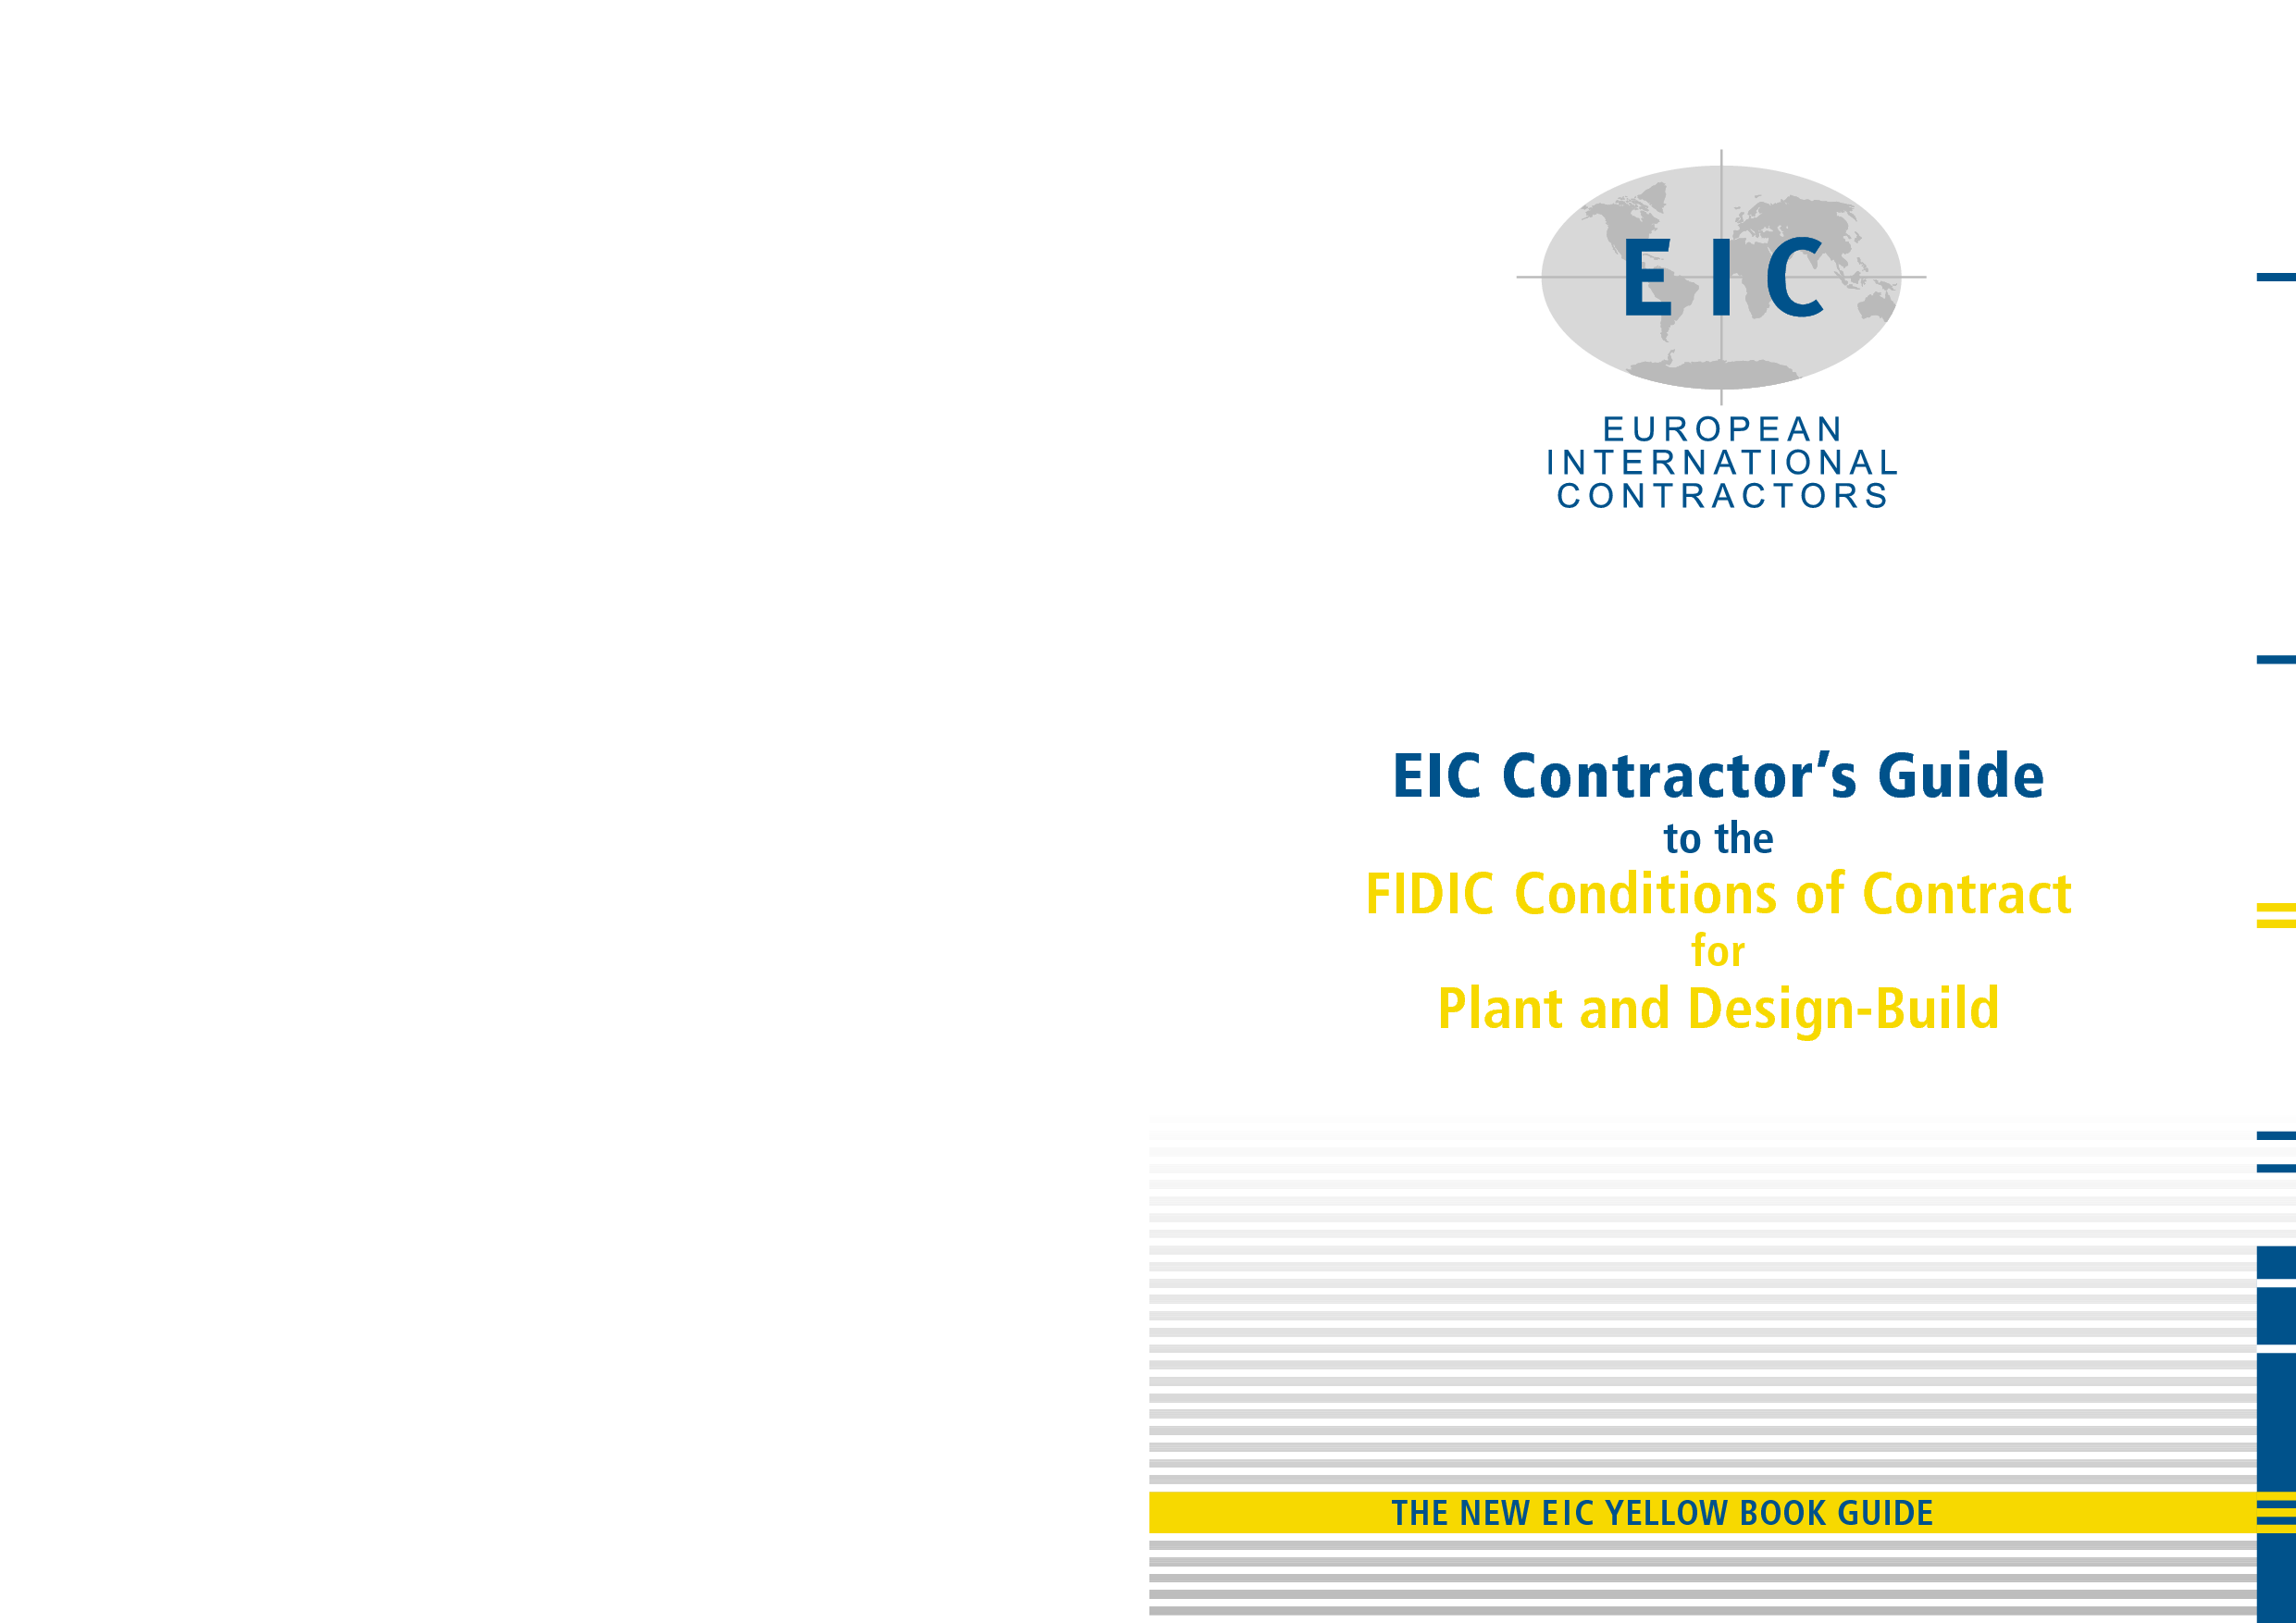 fidic yellow book plant and design build contract